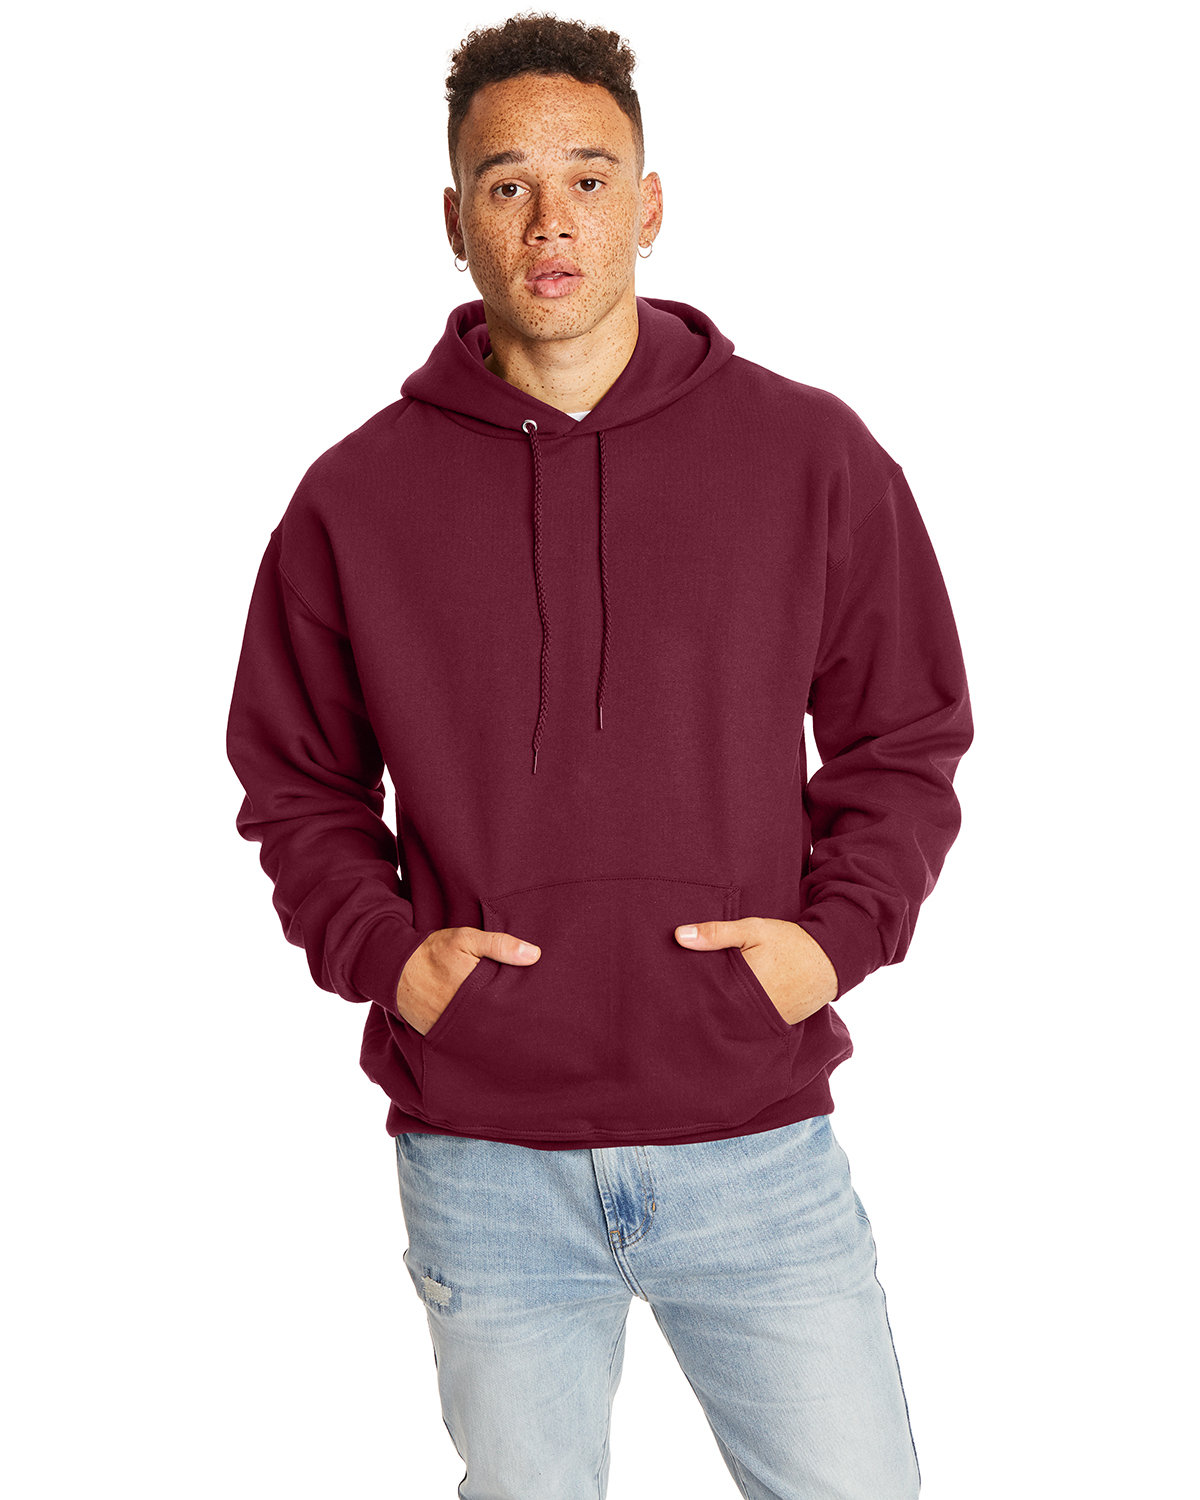 Hanes Adult Ultimate Cotton® 90/10 Pullover Hooded Sweatshirt MAROON